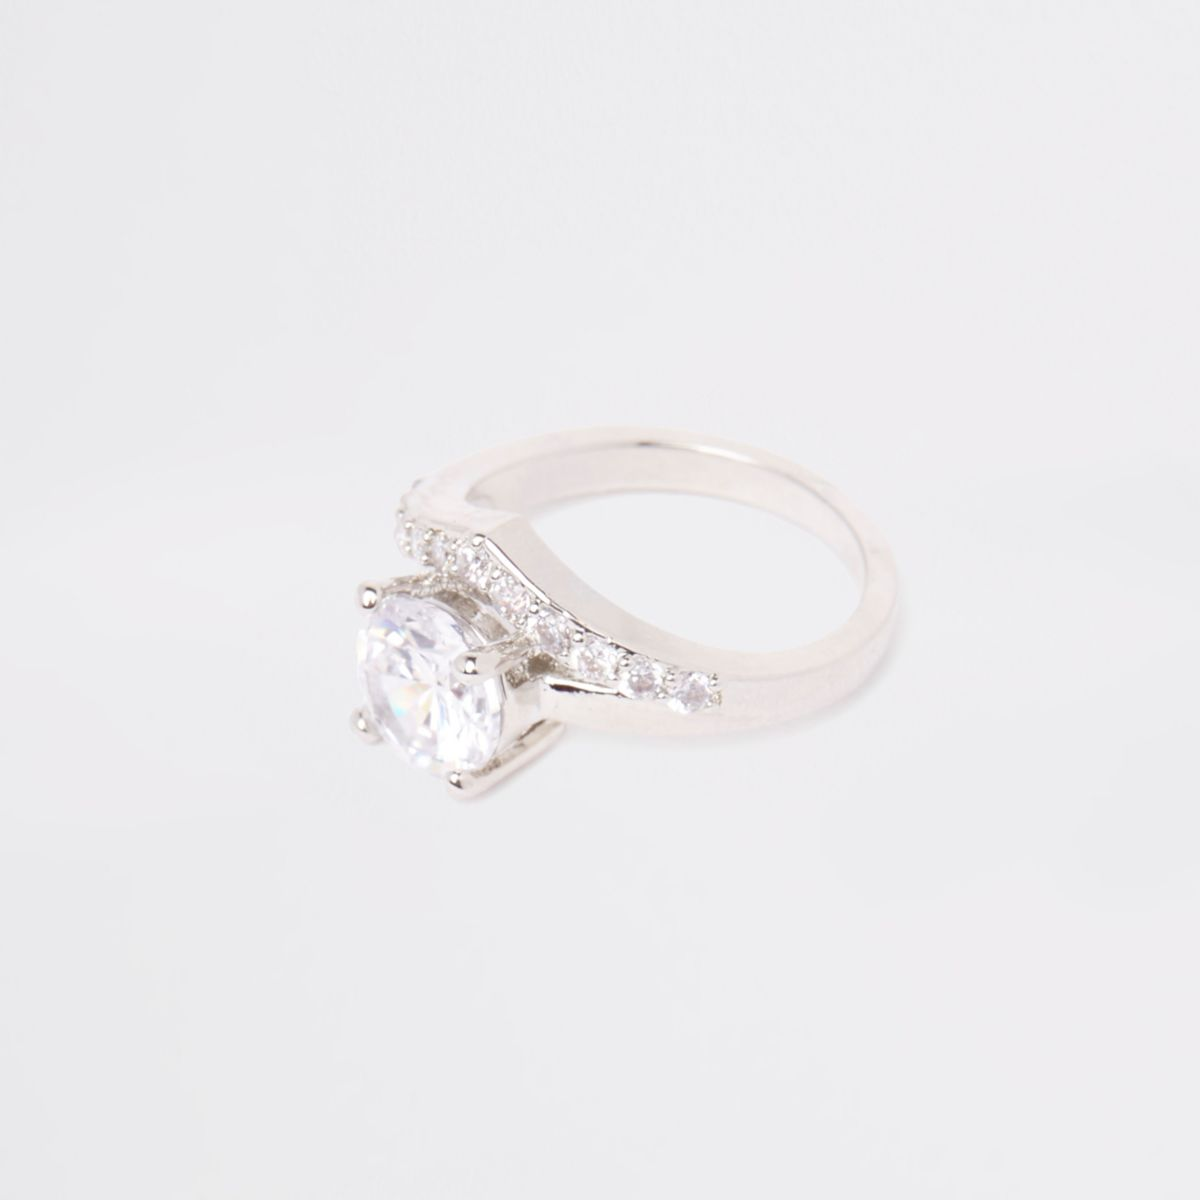 Silver tone cubic zirconia stone ring